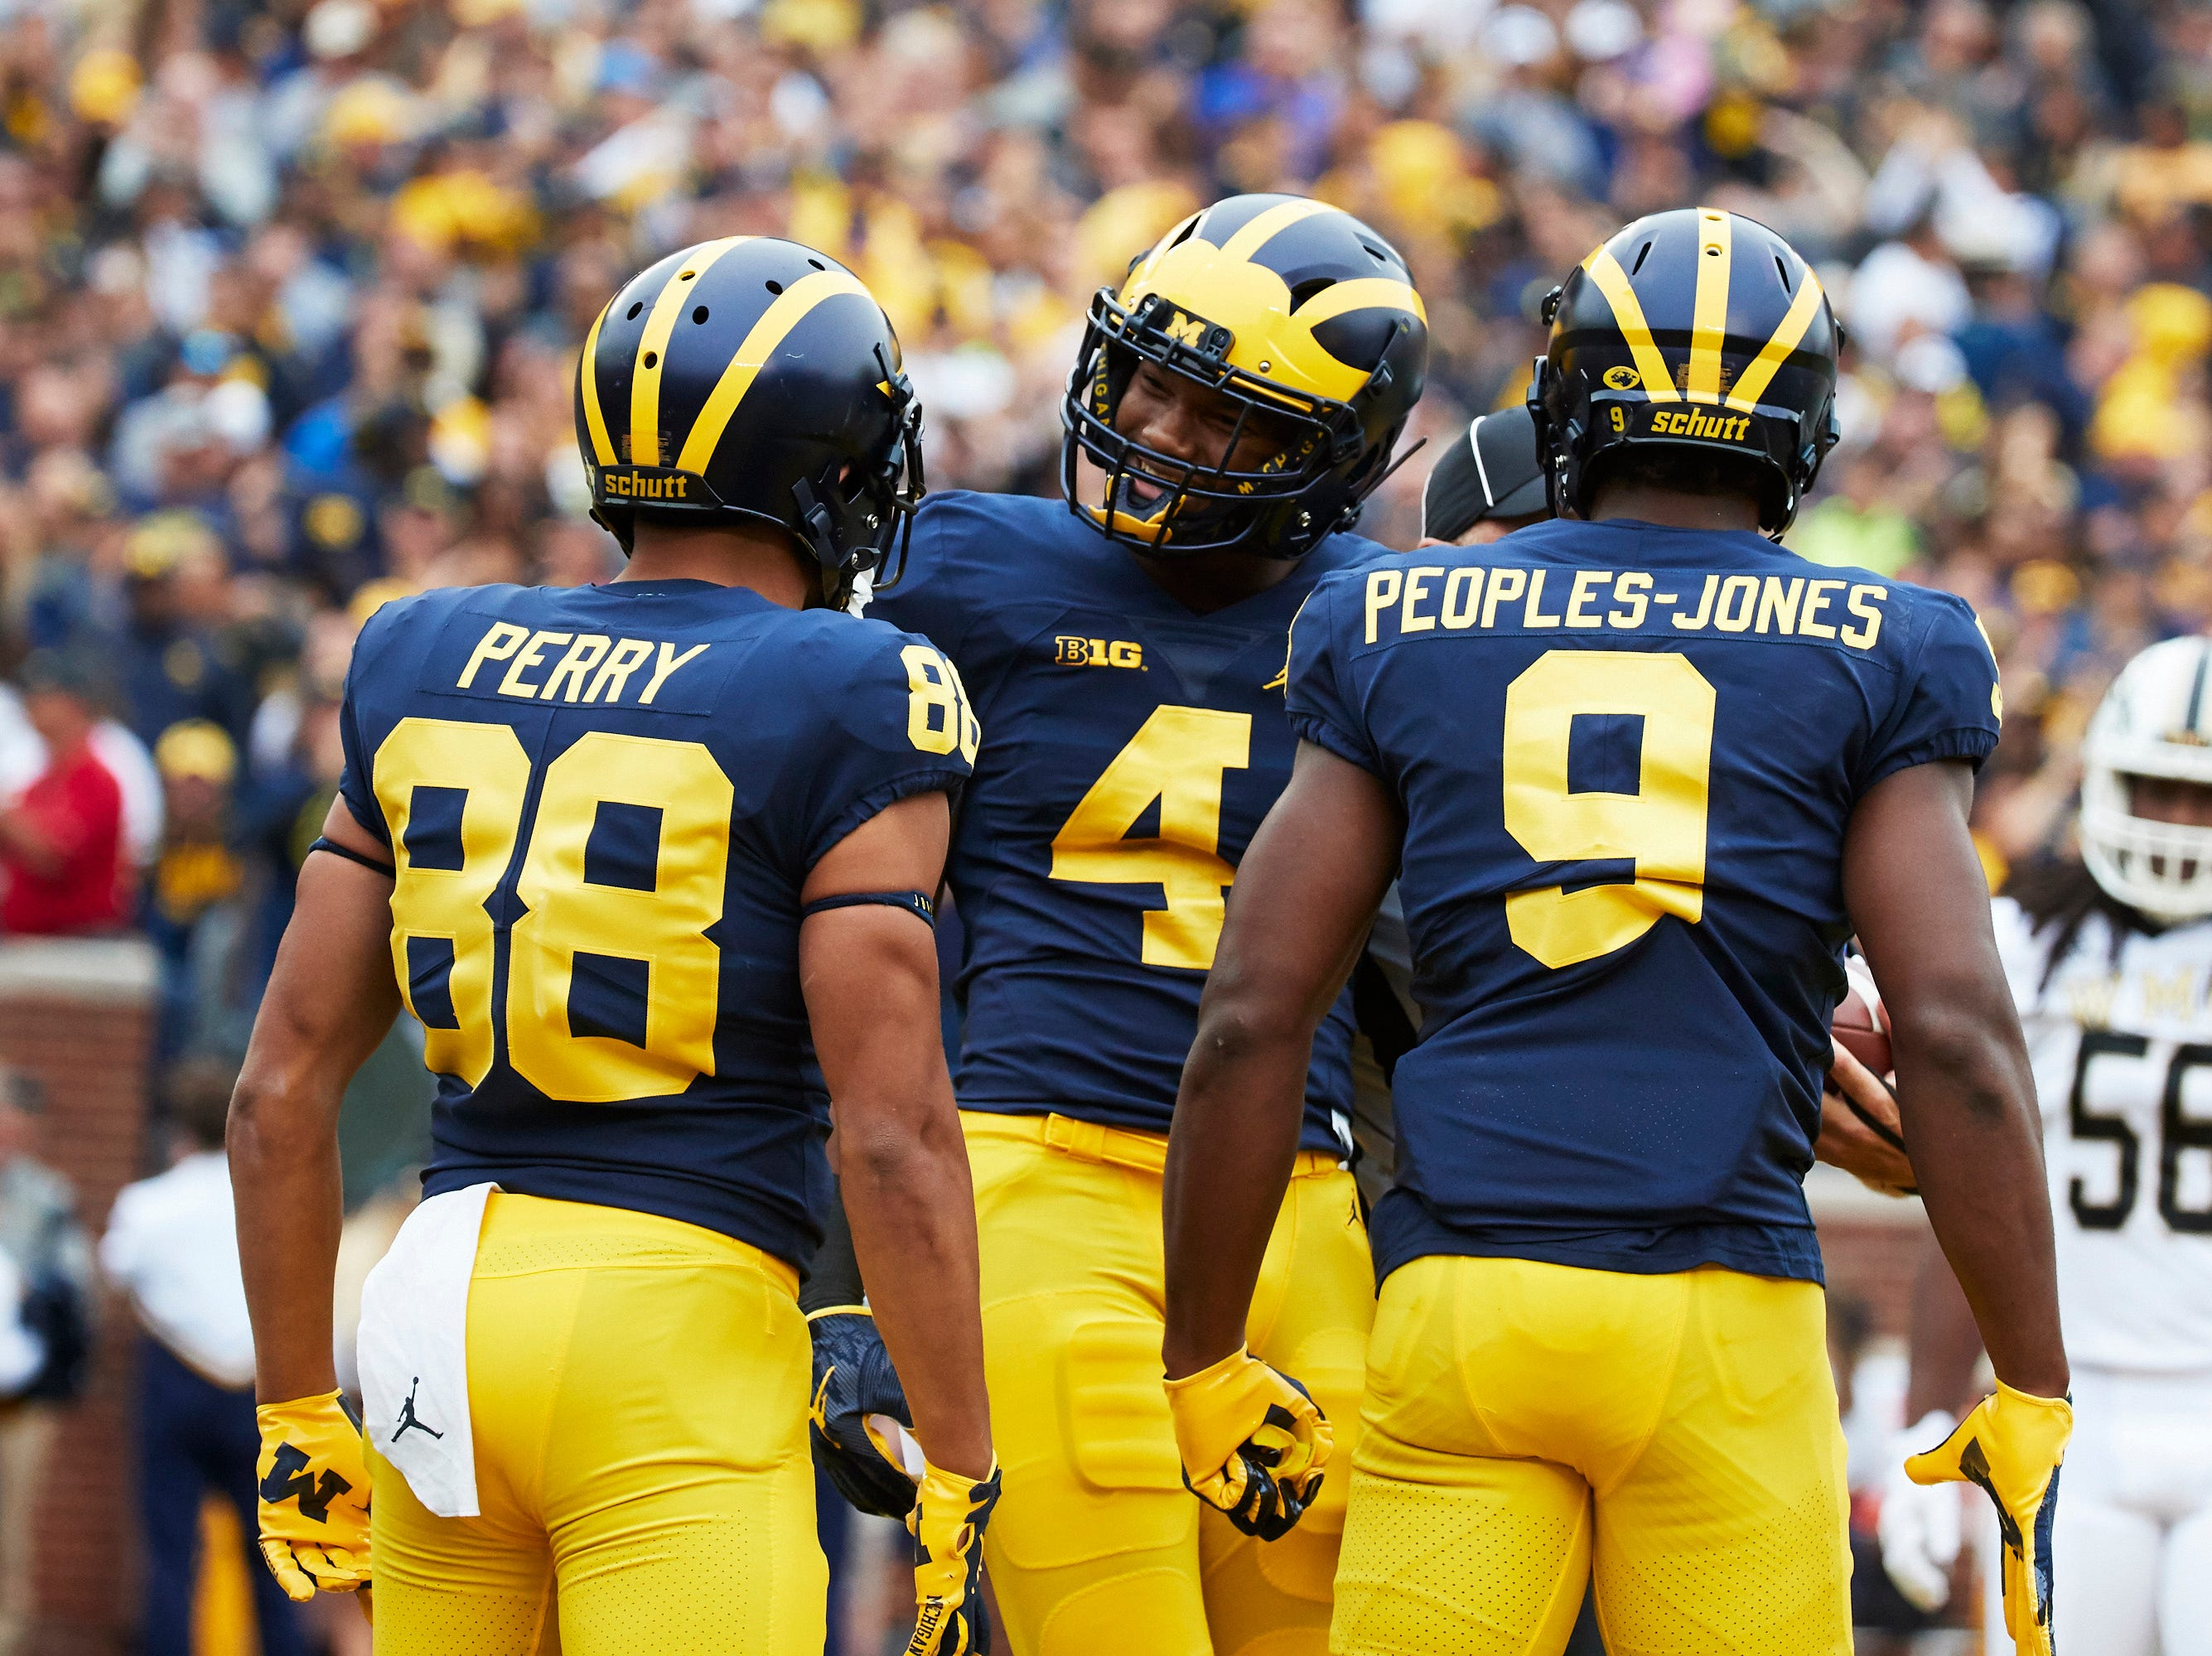 Sep 8, 2018; Ann Arbor, MI, USA; Michigan Wolverines wide receiver Nico Collins (4) is congratulated by wide receiver Grant Perry (88) and wide receiver Donovan Peoples-Jones (9)  after scoring a touchdown against the Western Michigan Broncos in the first half at Michigan Stadium. Mandatory Credit: Rick Osentoski-USA TODAY Sports